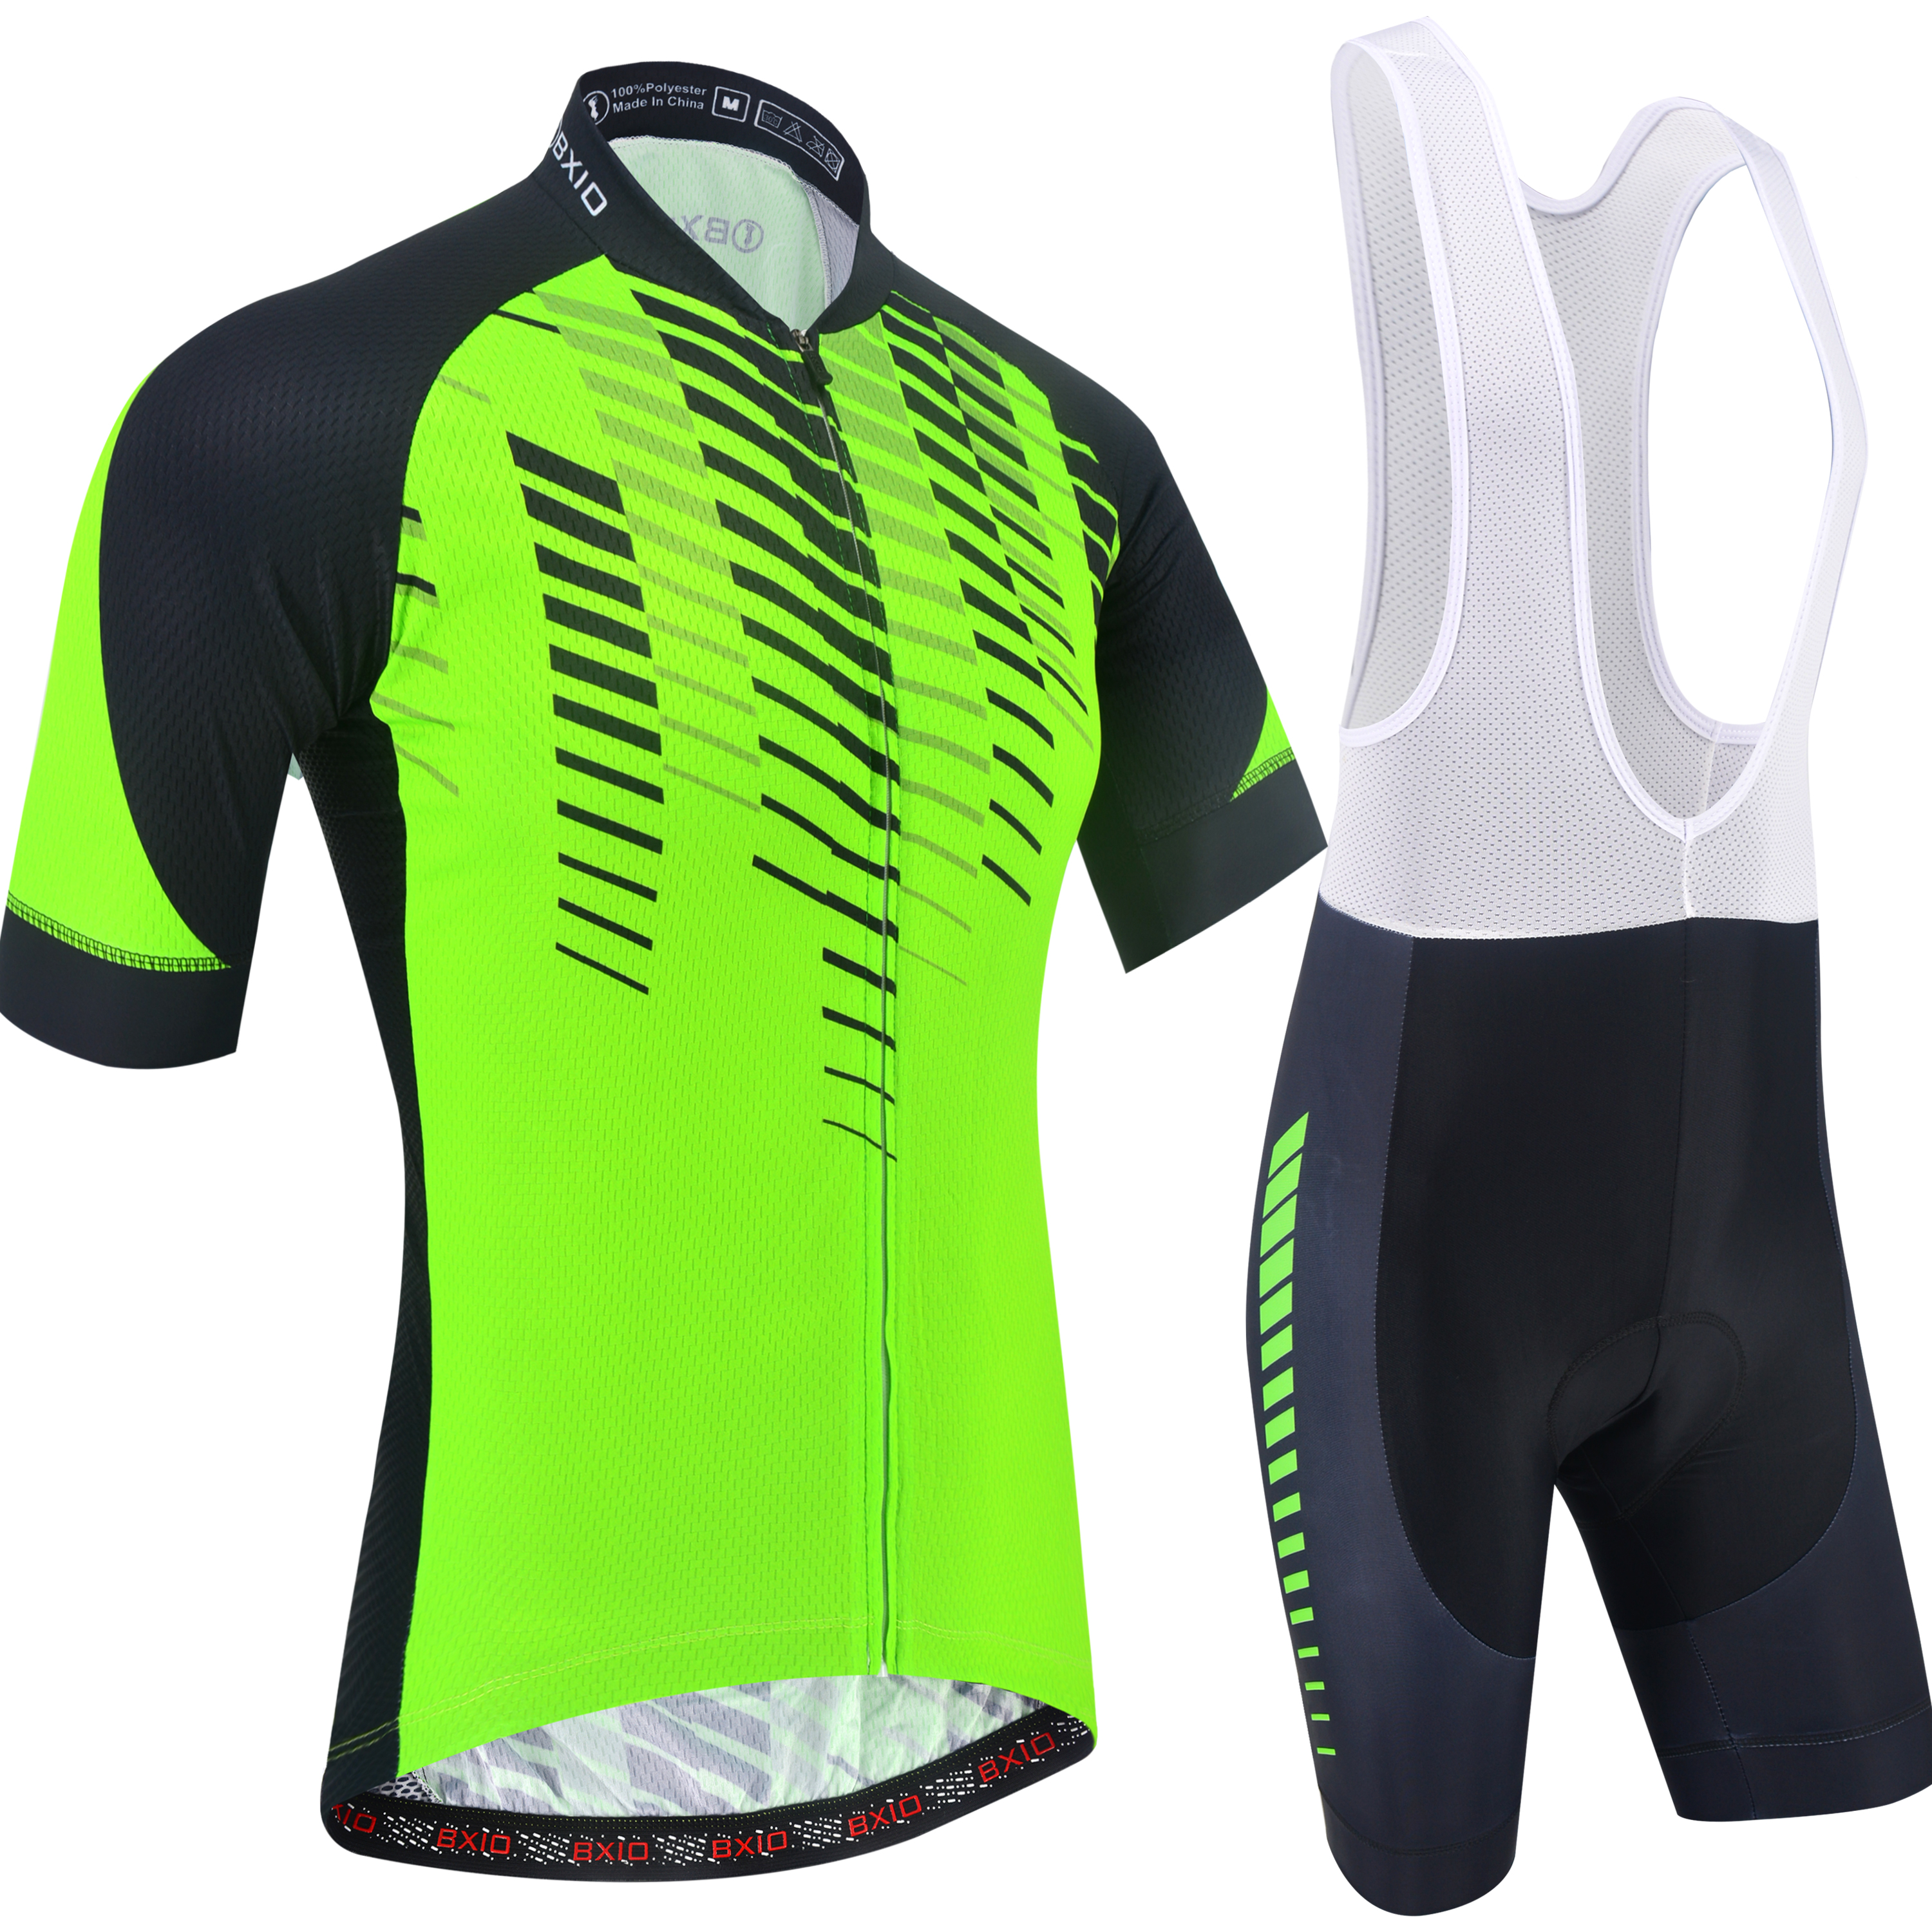 BXIO Cycling Jerseys Breathable Short Sleeve Bike Jersey with 3D Gel Pad Bib Shorts for Pro Team Cycling Sport